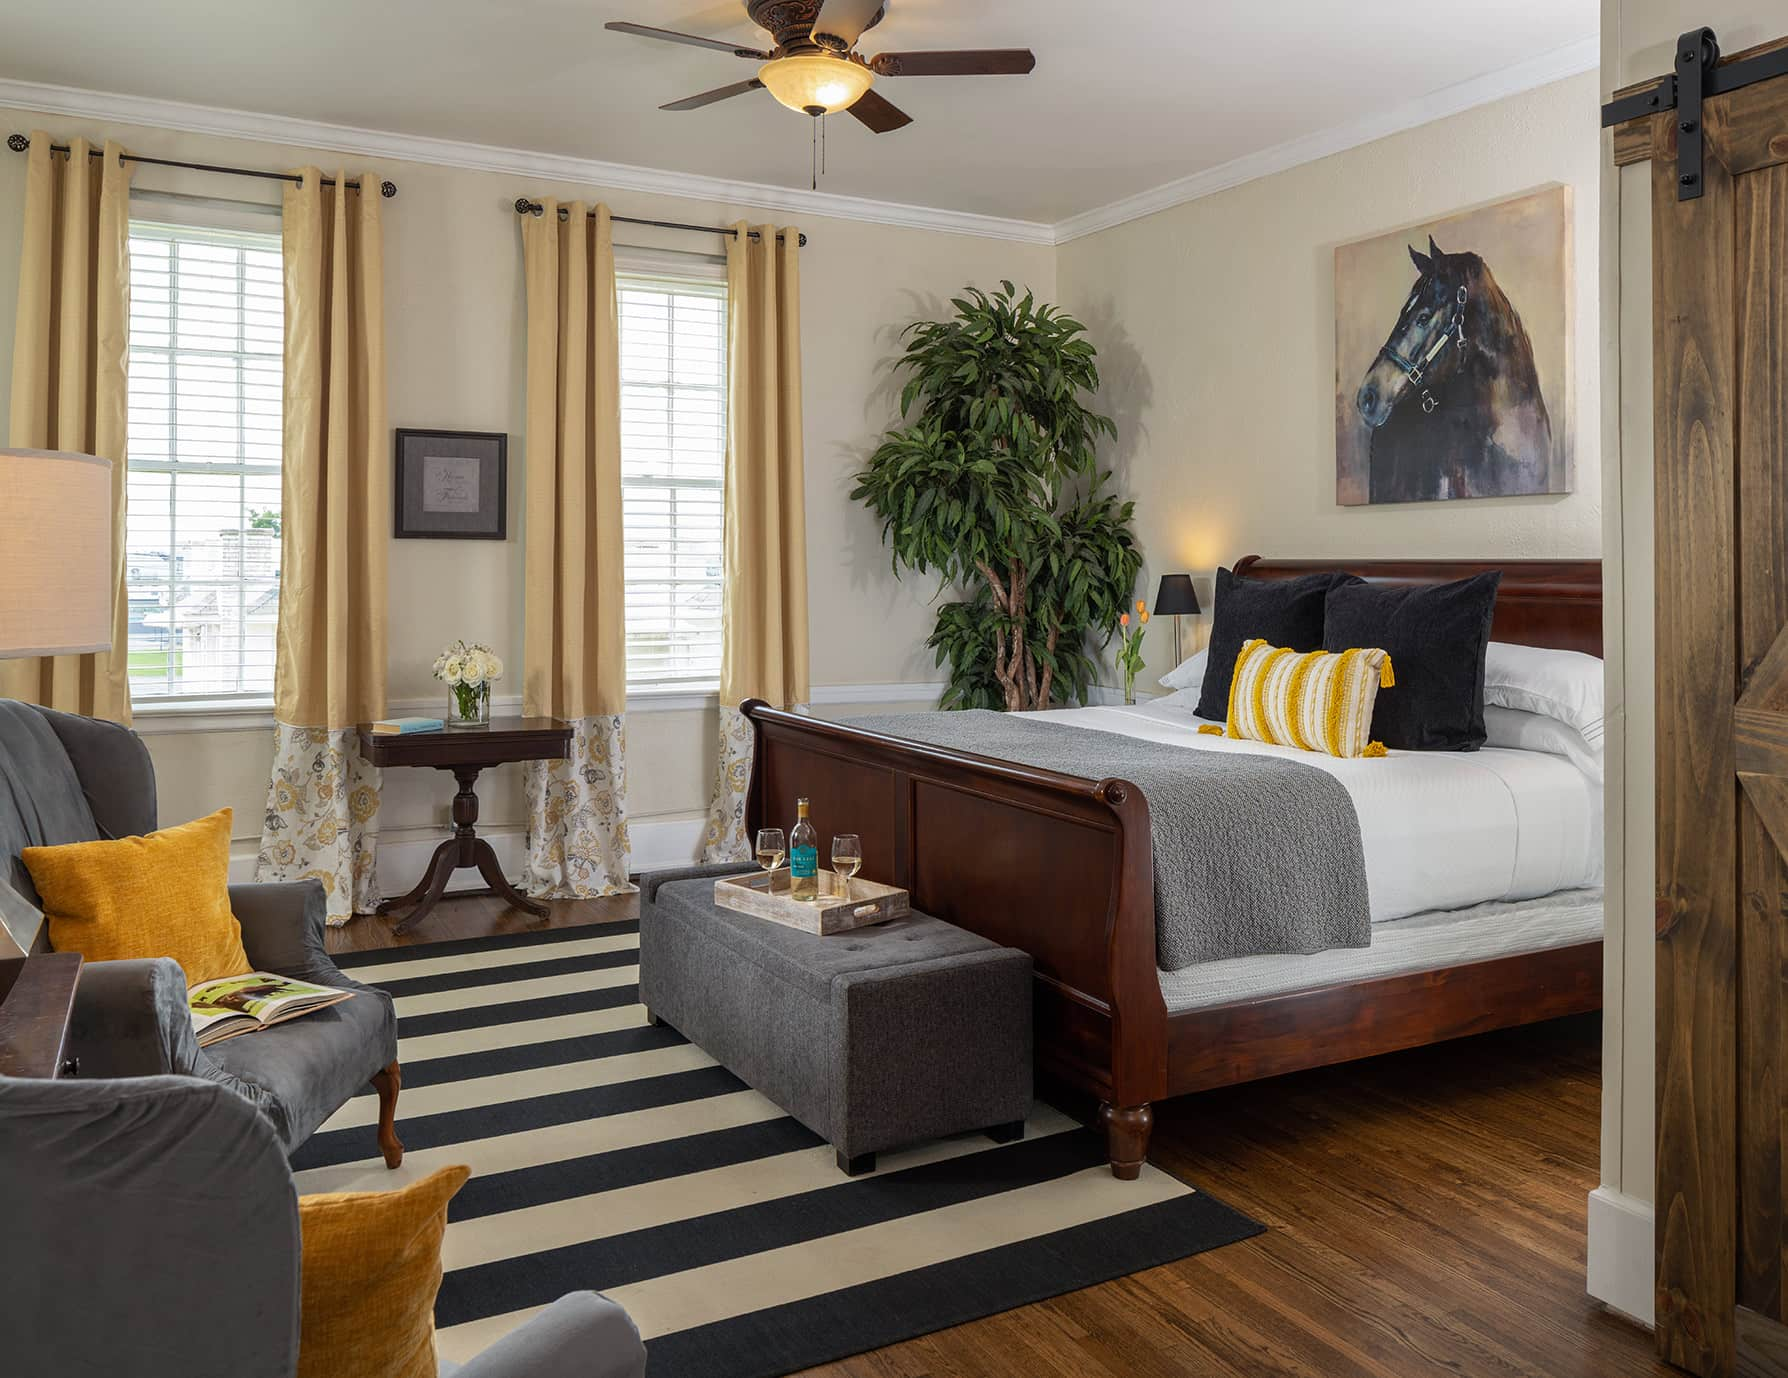 The Wellington room bed and sitting area